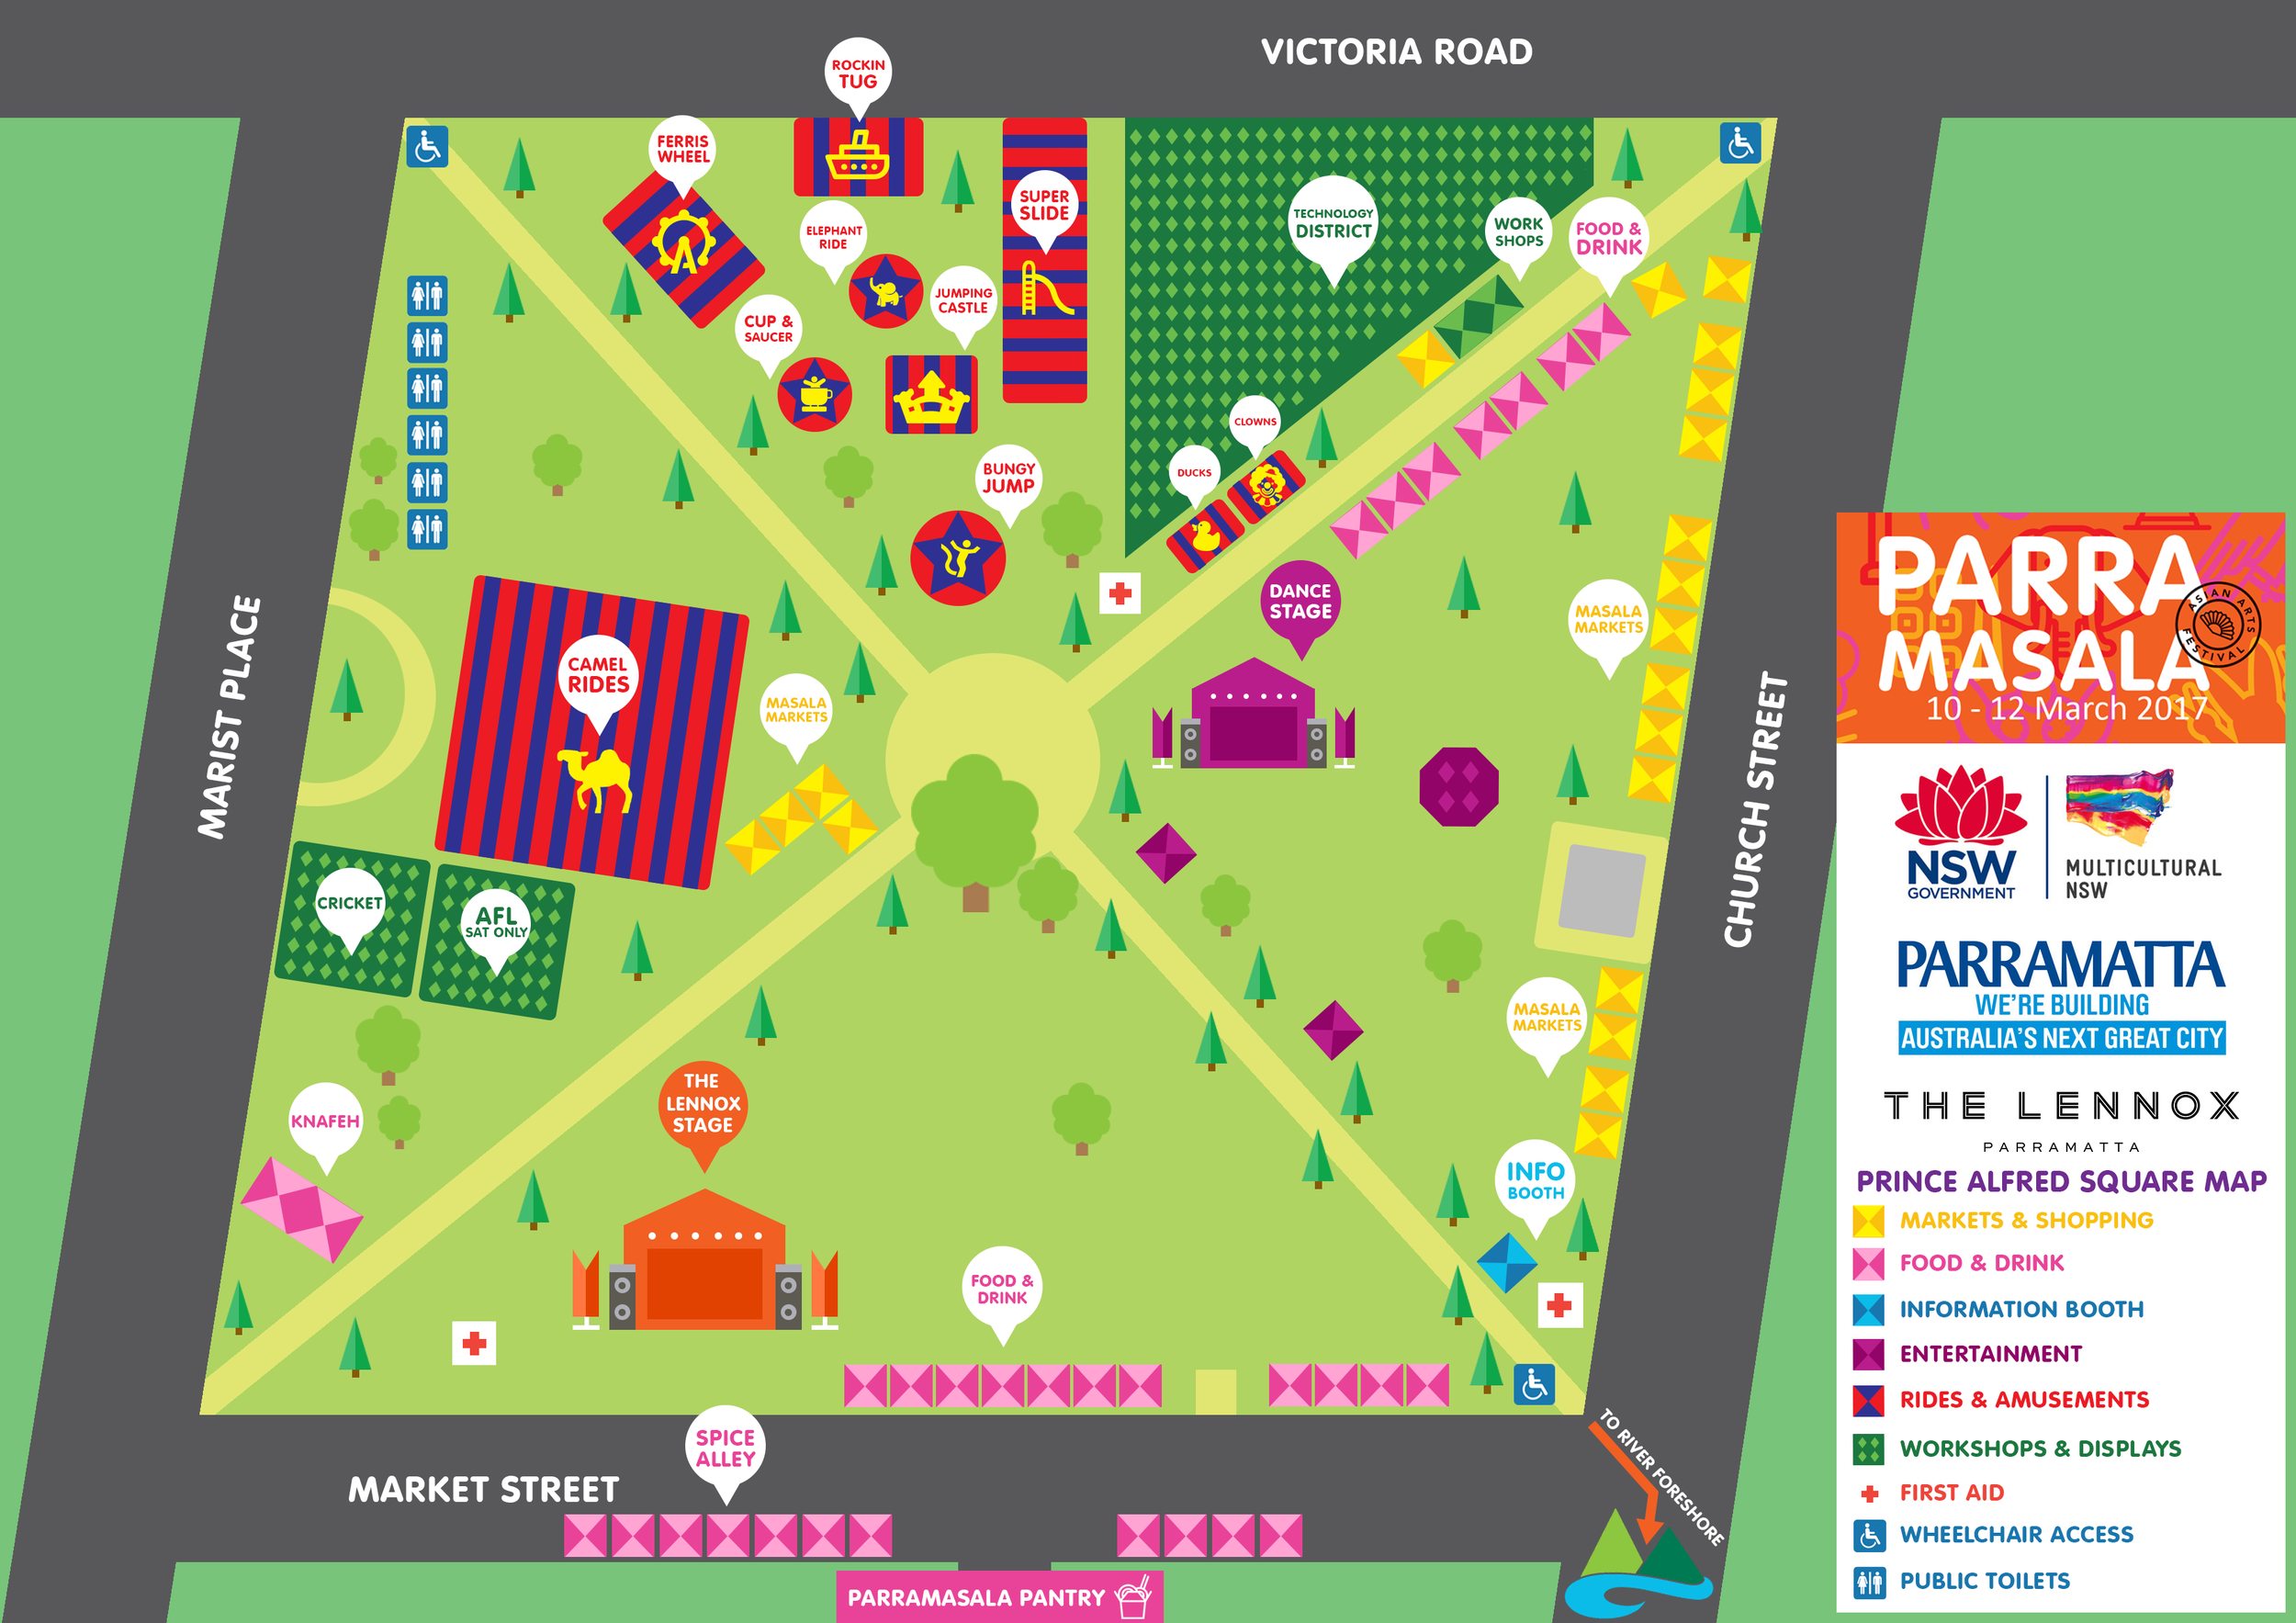 Prince Alfred Square Map